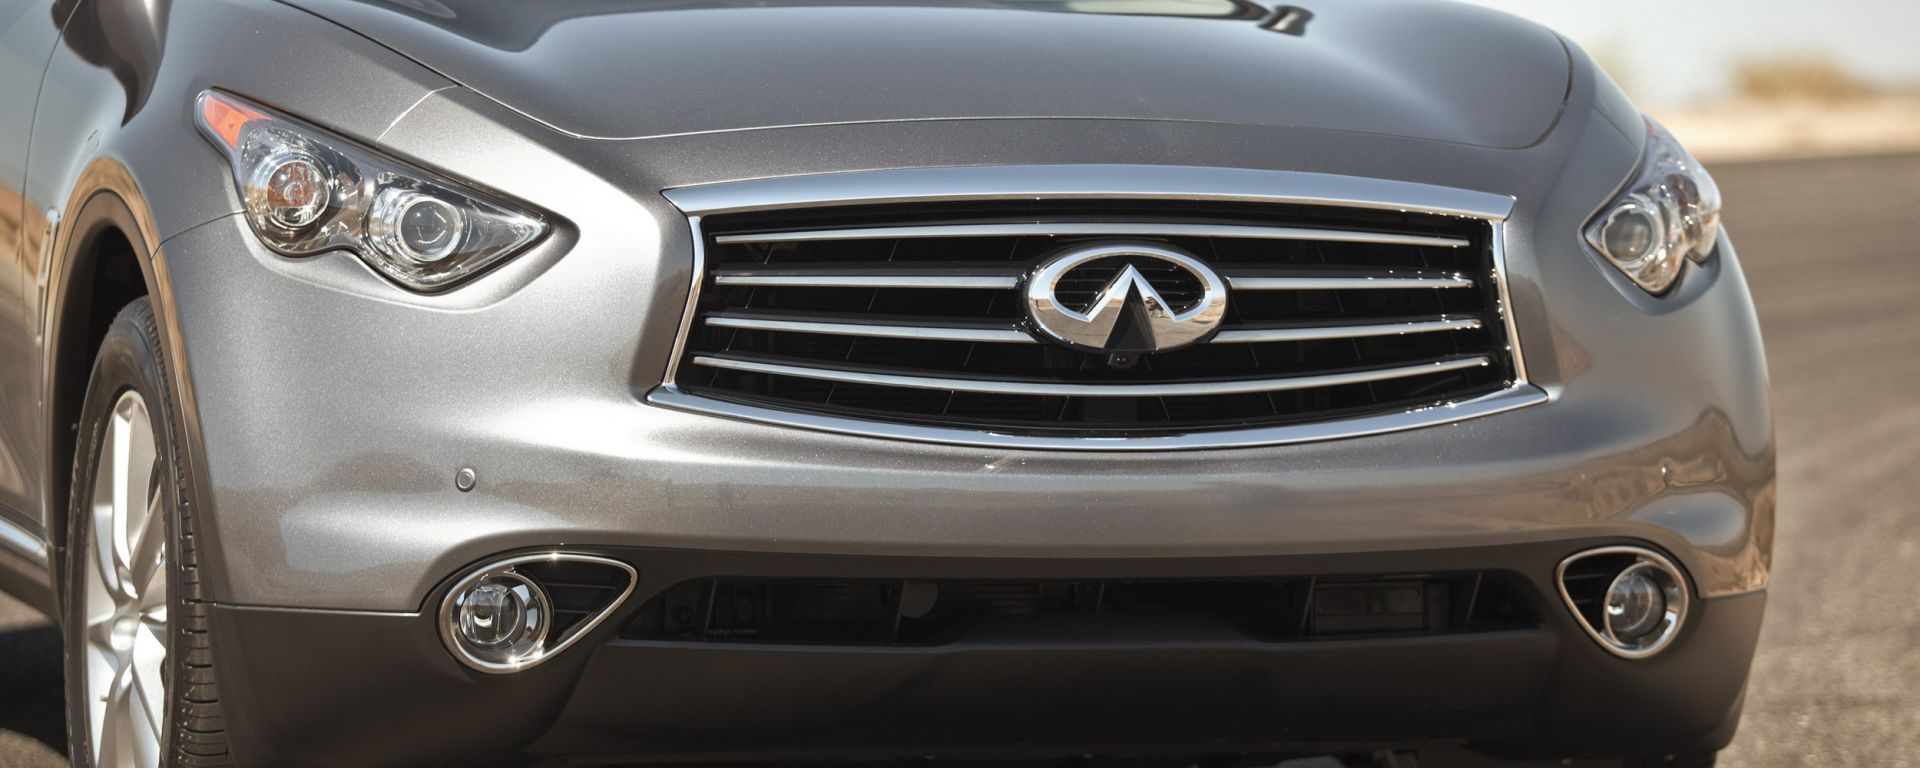 Infiniti FX my 2012, ora anche in video